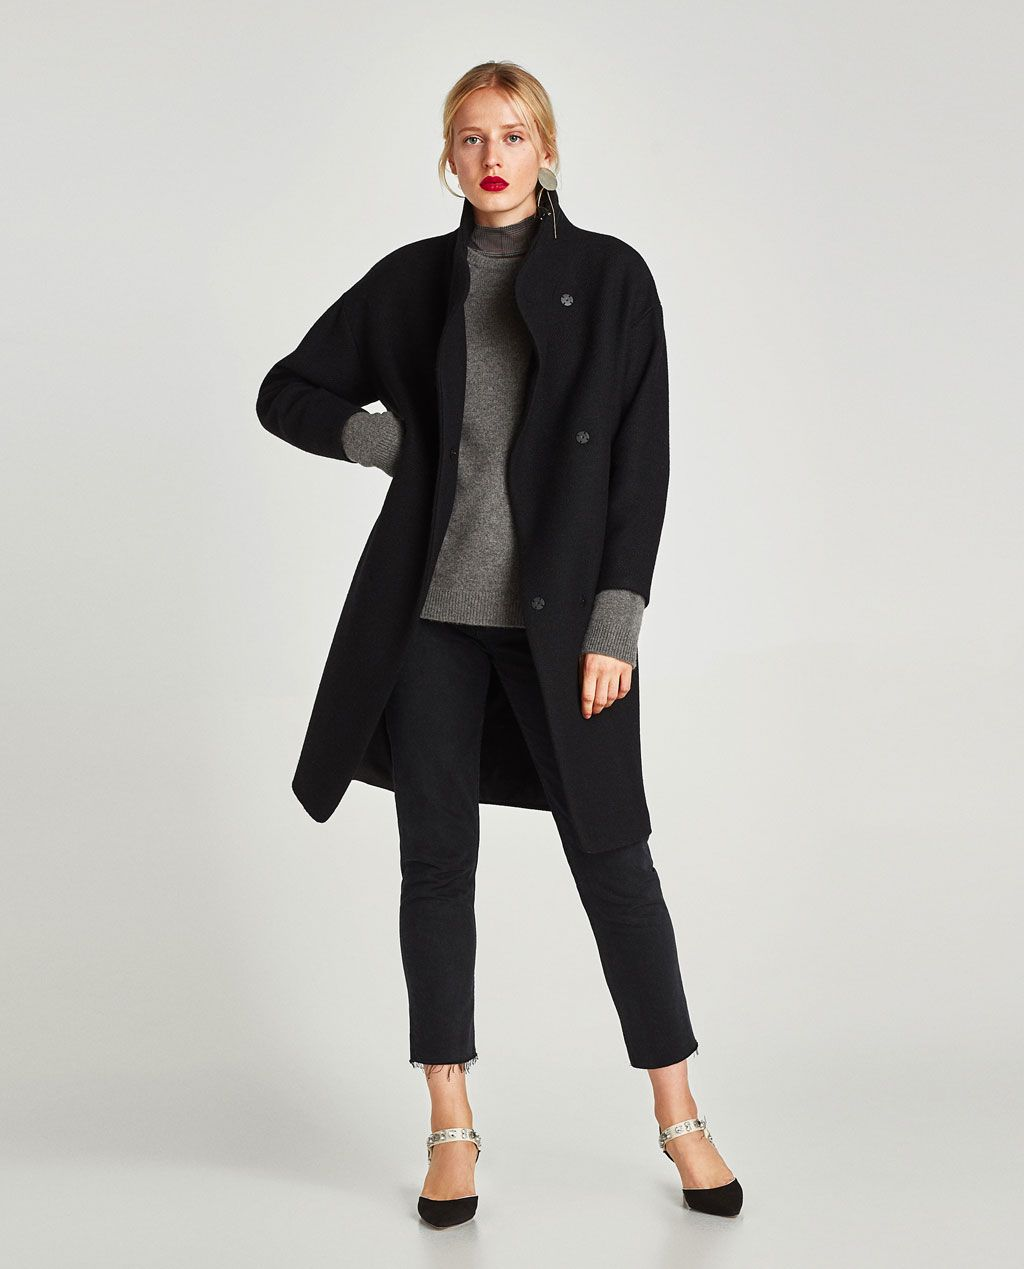 LONG COAT WITH WRAPAROUND COLLAR-View all-OUTERWEAR-WOMAN  0ee3ada78be7